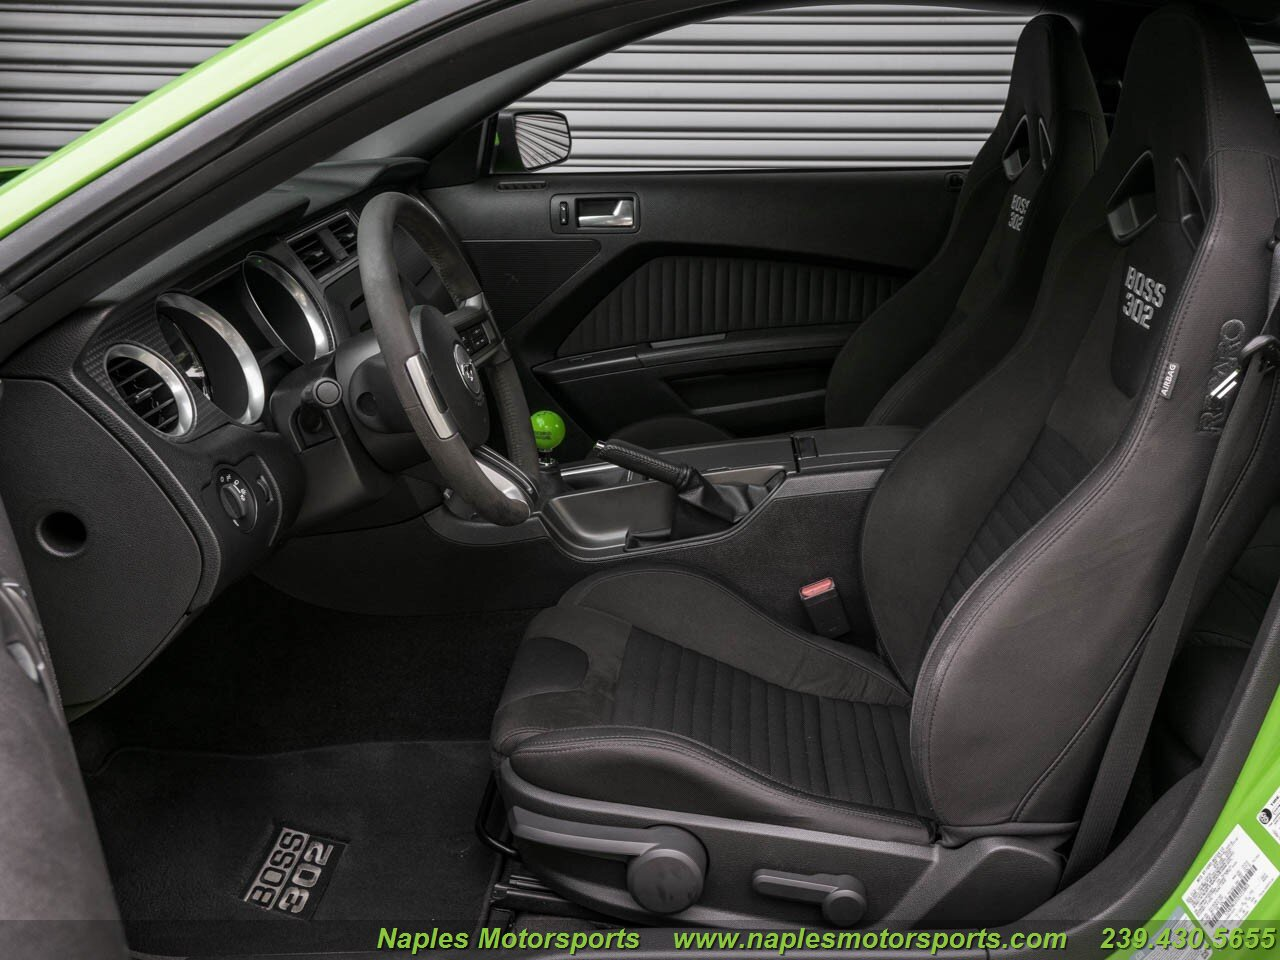 2013 Ford Mustang Naples FL